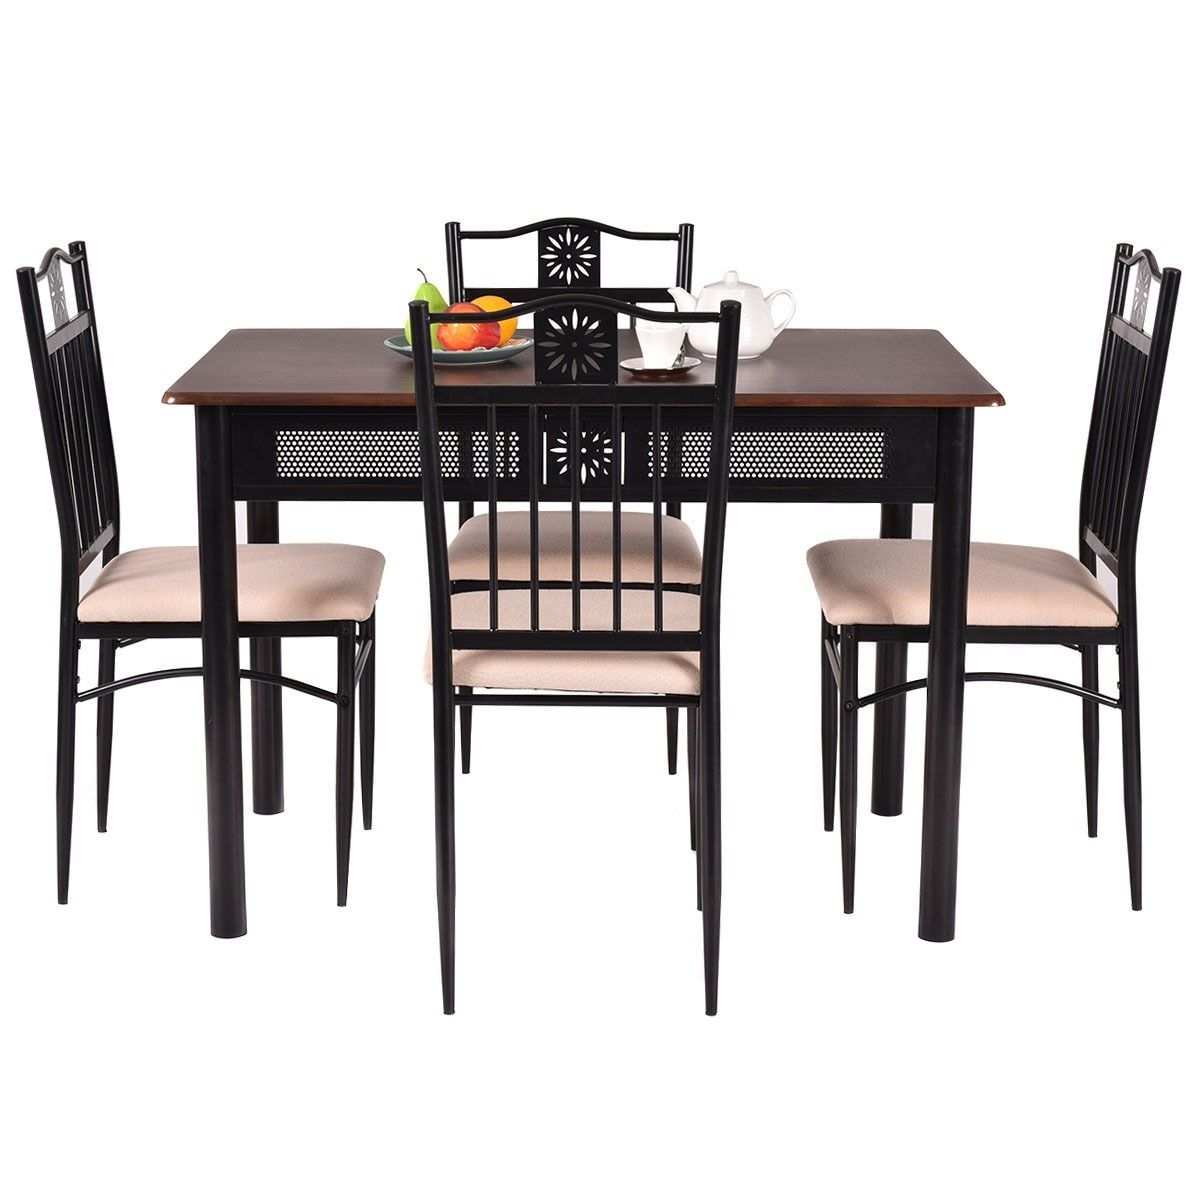 5 Piece Dining Set Wood Metal Table And 4 Chairs Kitchen Breakfast Furniture New  Ebay